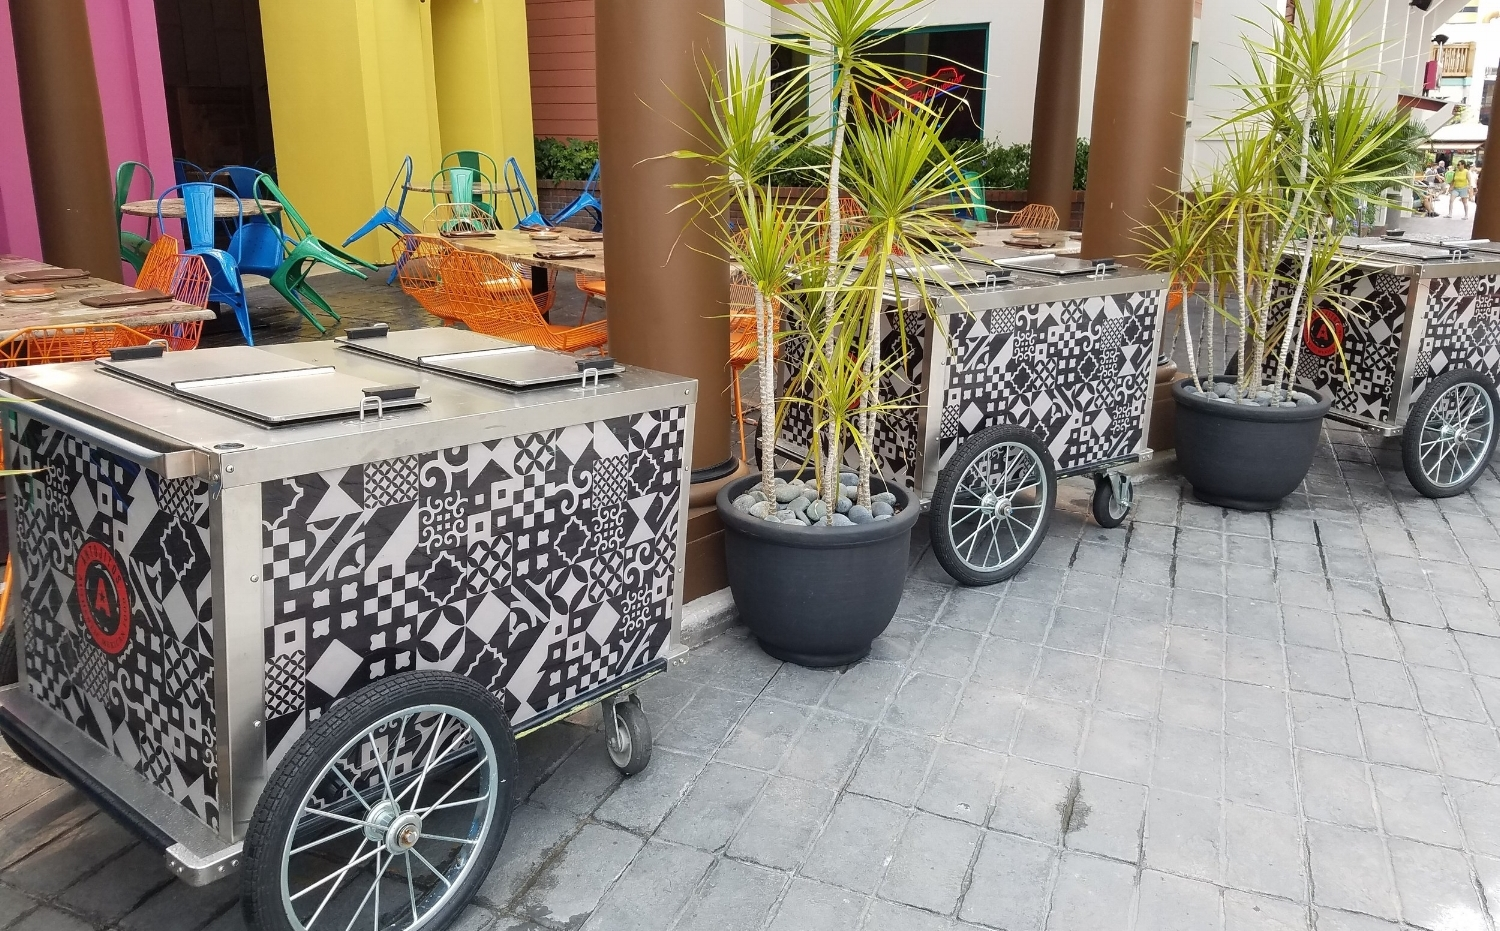 Drink carts in front of Antojitos.